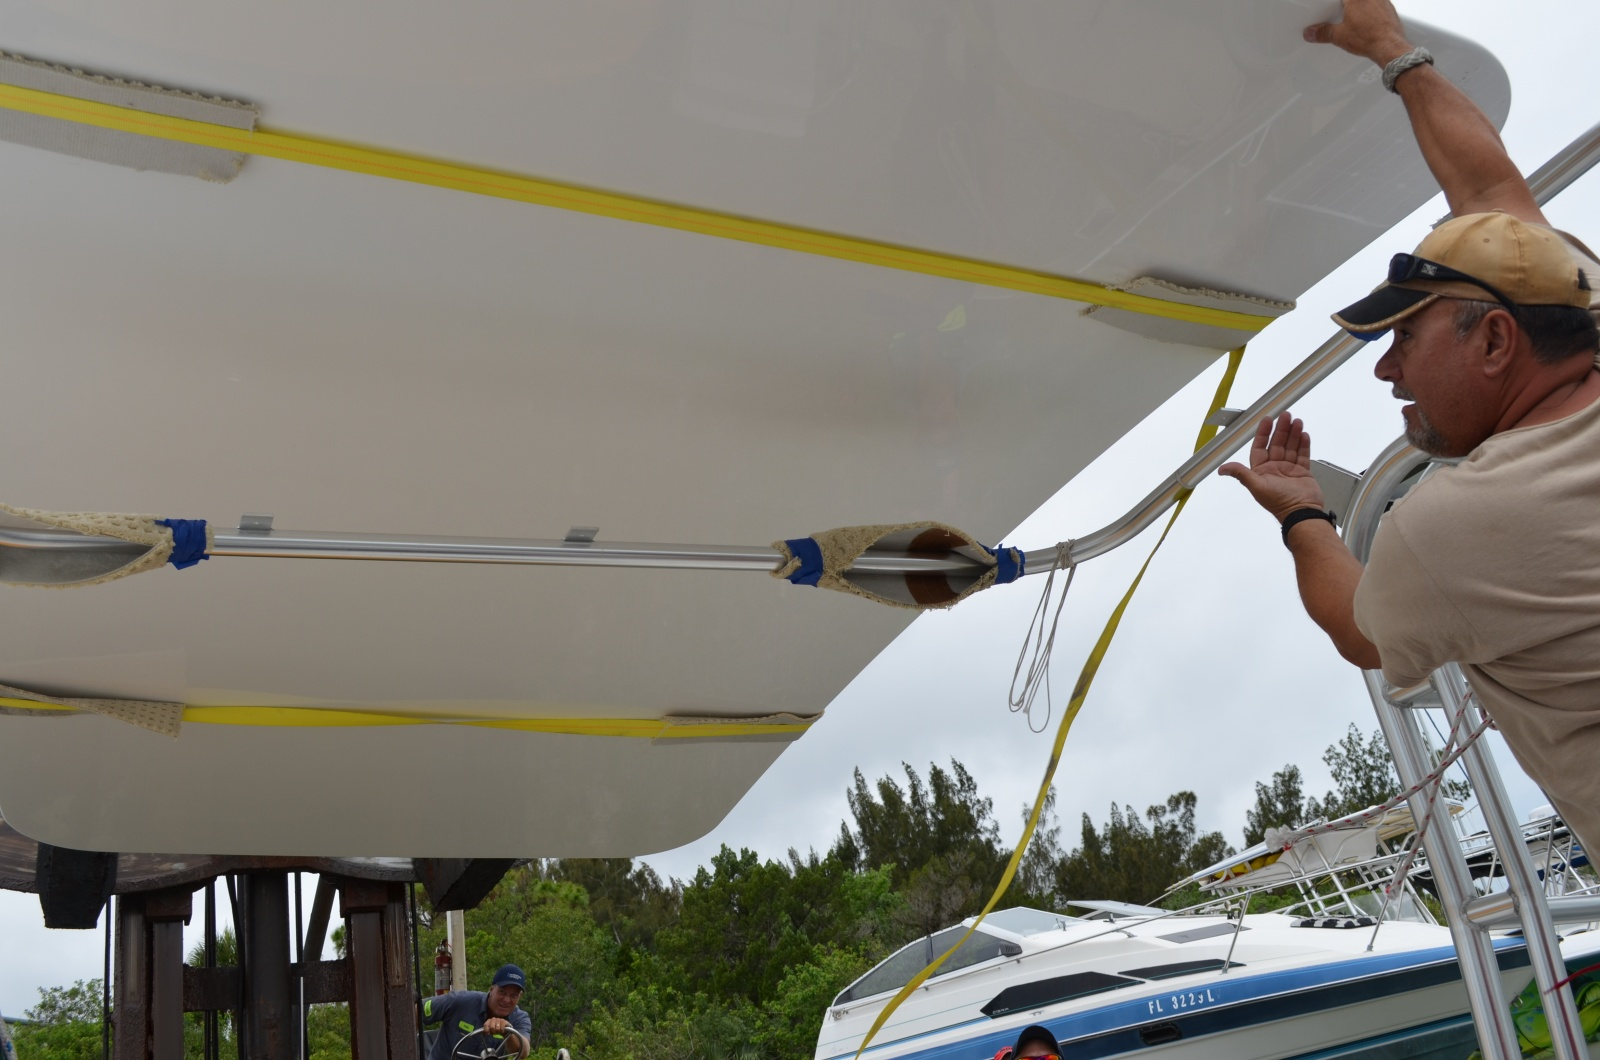 Click image for larger version  Name:Hardtop being fitted on boat.jpg Views:208 Size:367.7 KB ID:88504